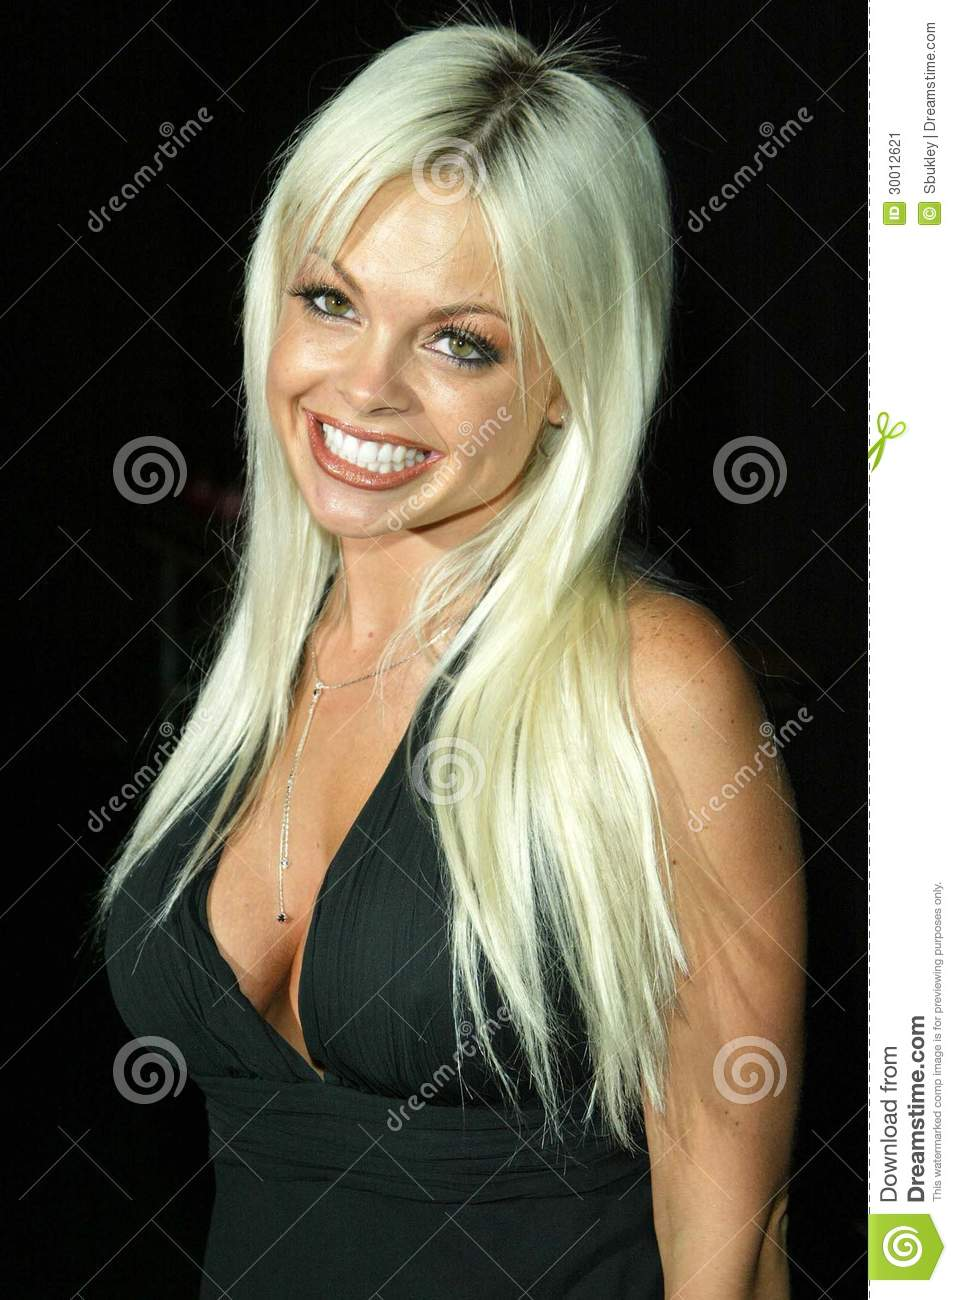 Jesse Jane Wallpapers For Android